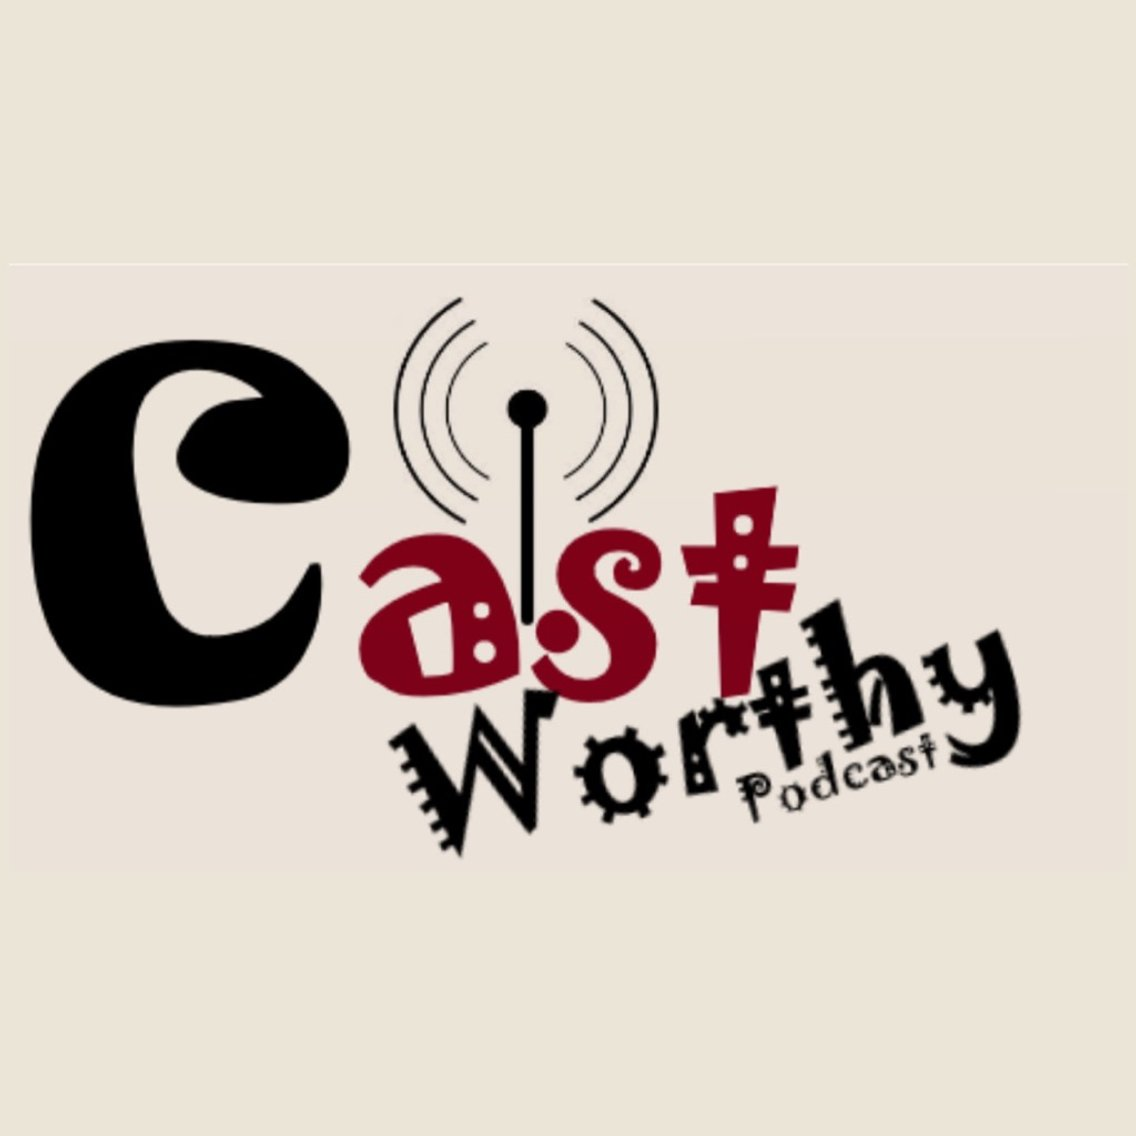 Cast Worthy - Cover Image